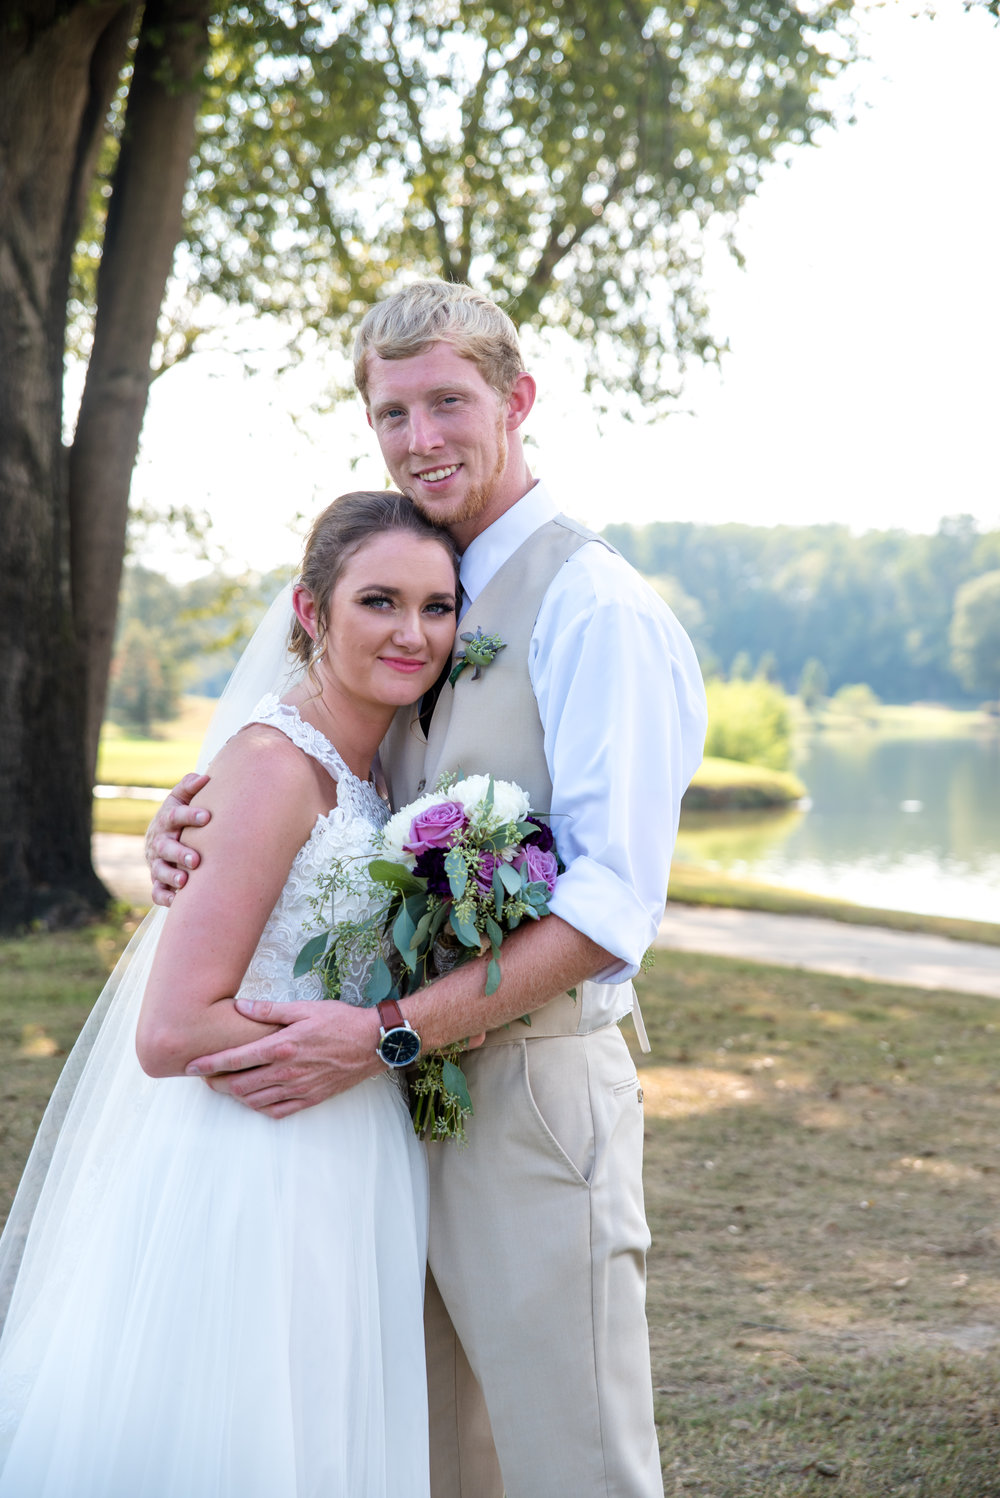 Alyx and justin  (109 of 433).JPG